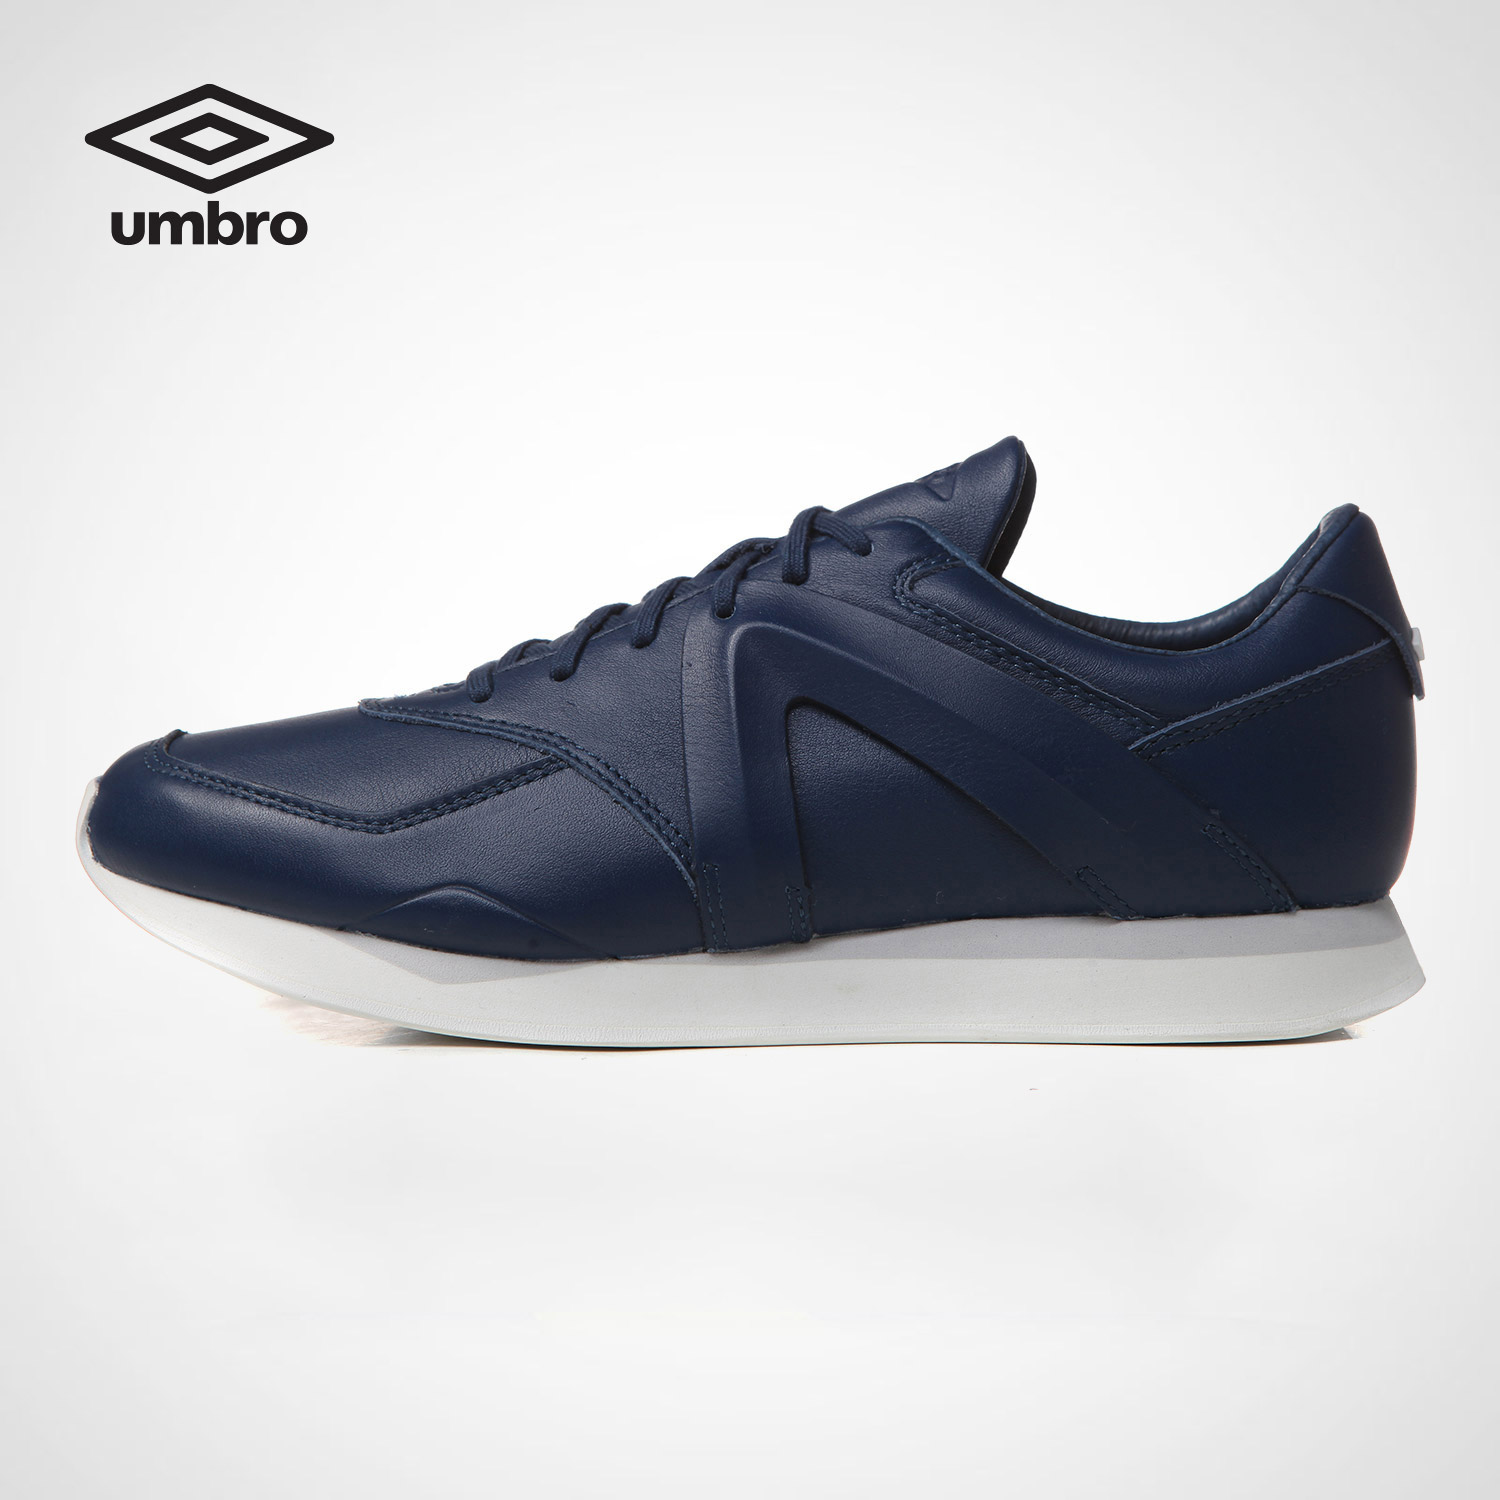 Clearance Umbro New Men Genyine Leather Shoes Lace Up Classic Breathable Sports Running Jogging Sneakers Sports